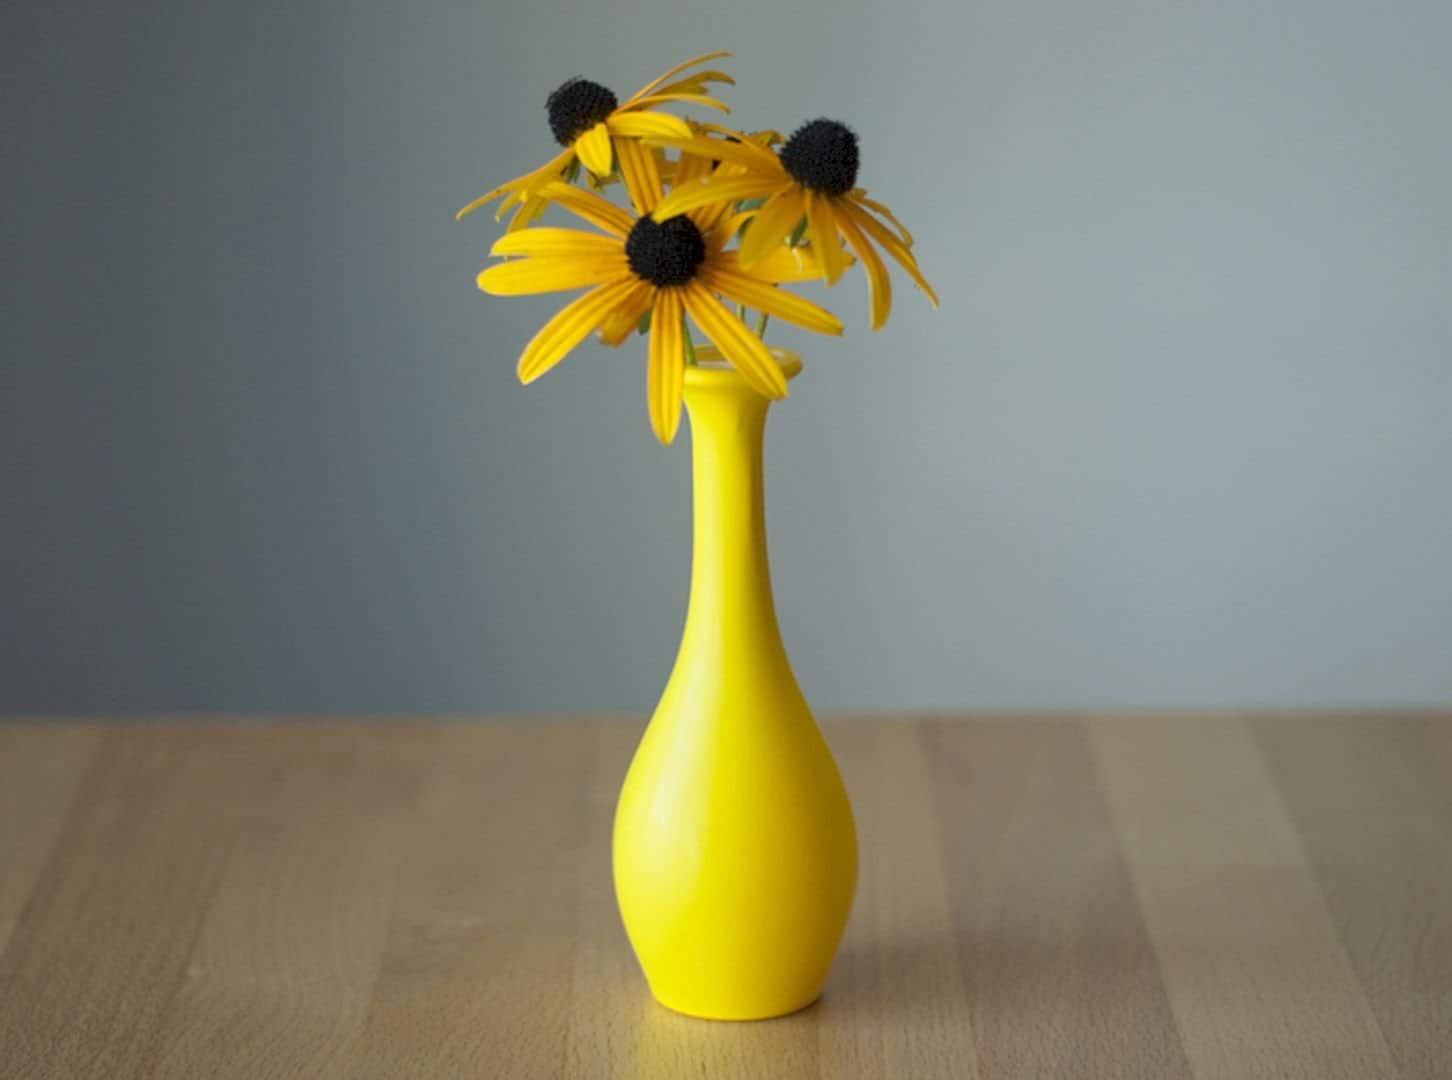 You Can Just Utilize This Unique Product To Change Balloon Into An  Exquisite Vase. The Primarily Preferred Standpoint Is That Now You Can  Change To Any ...